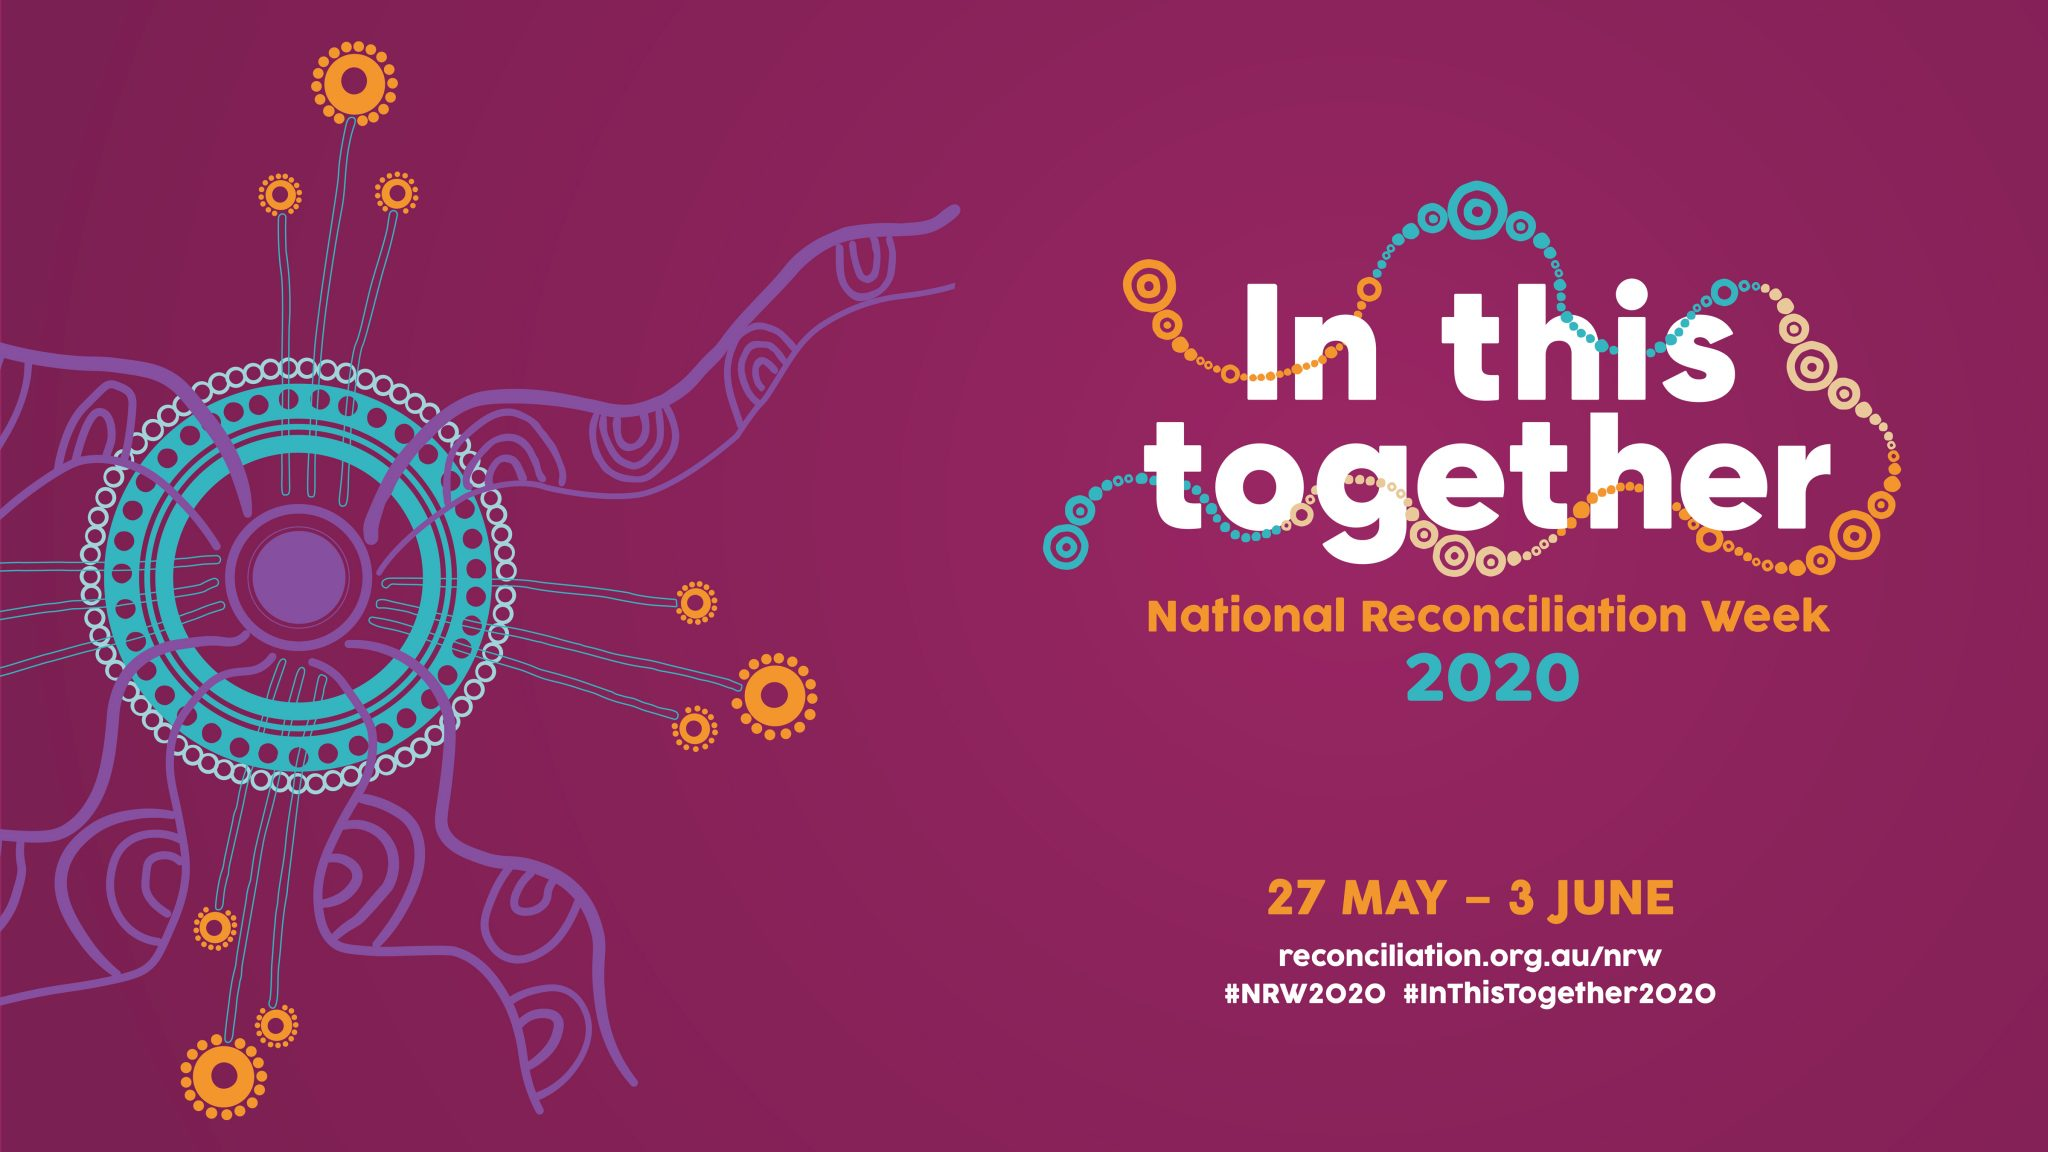 National Reconciliation Week – 27 May to 3 June